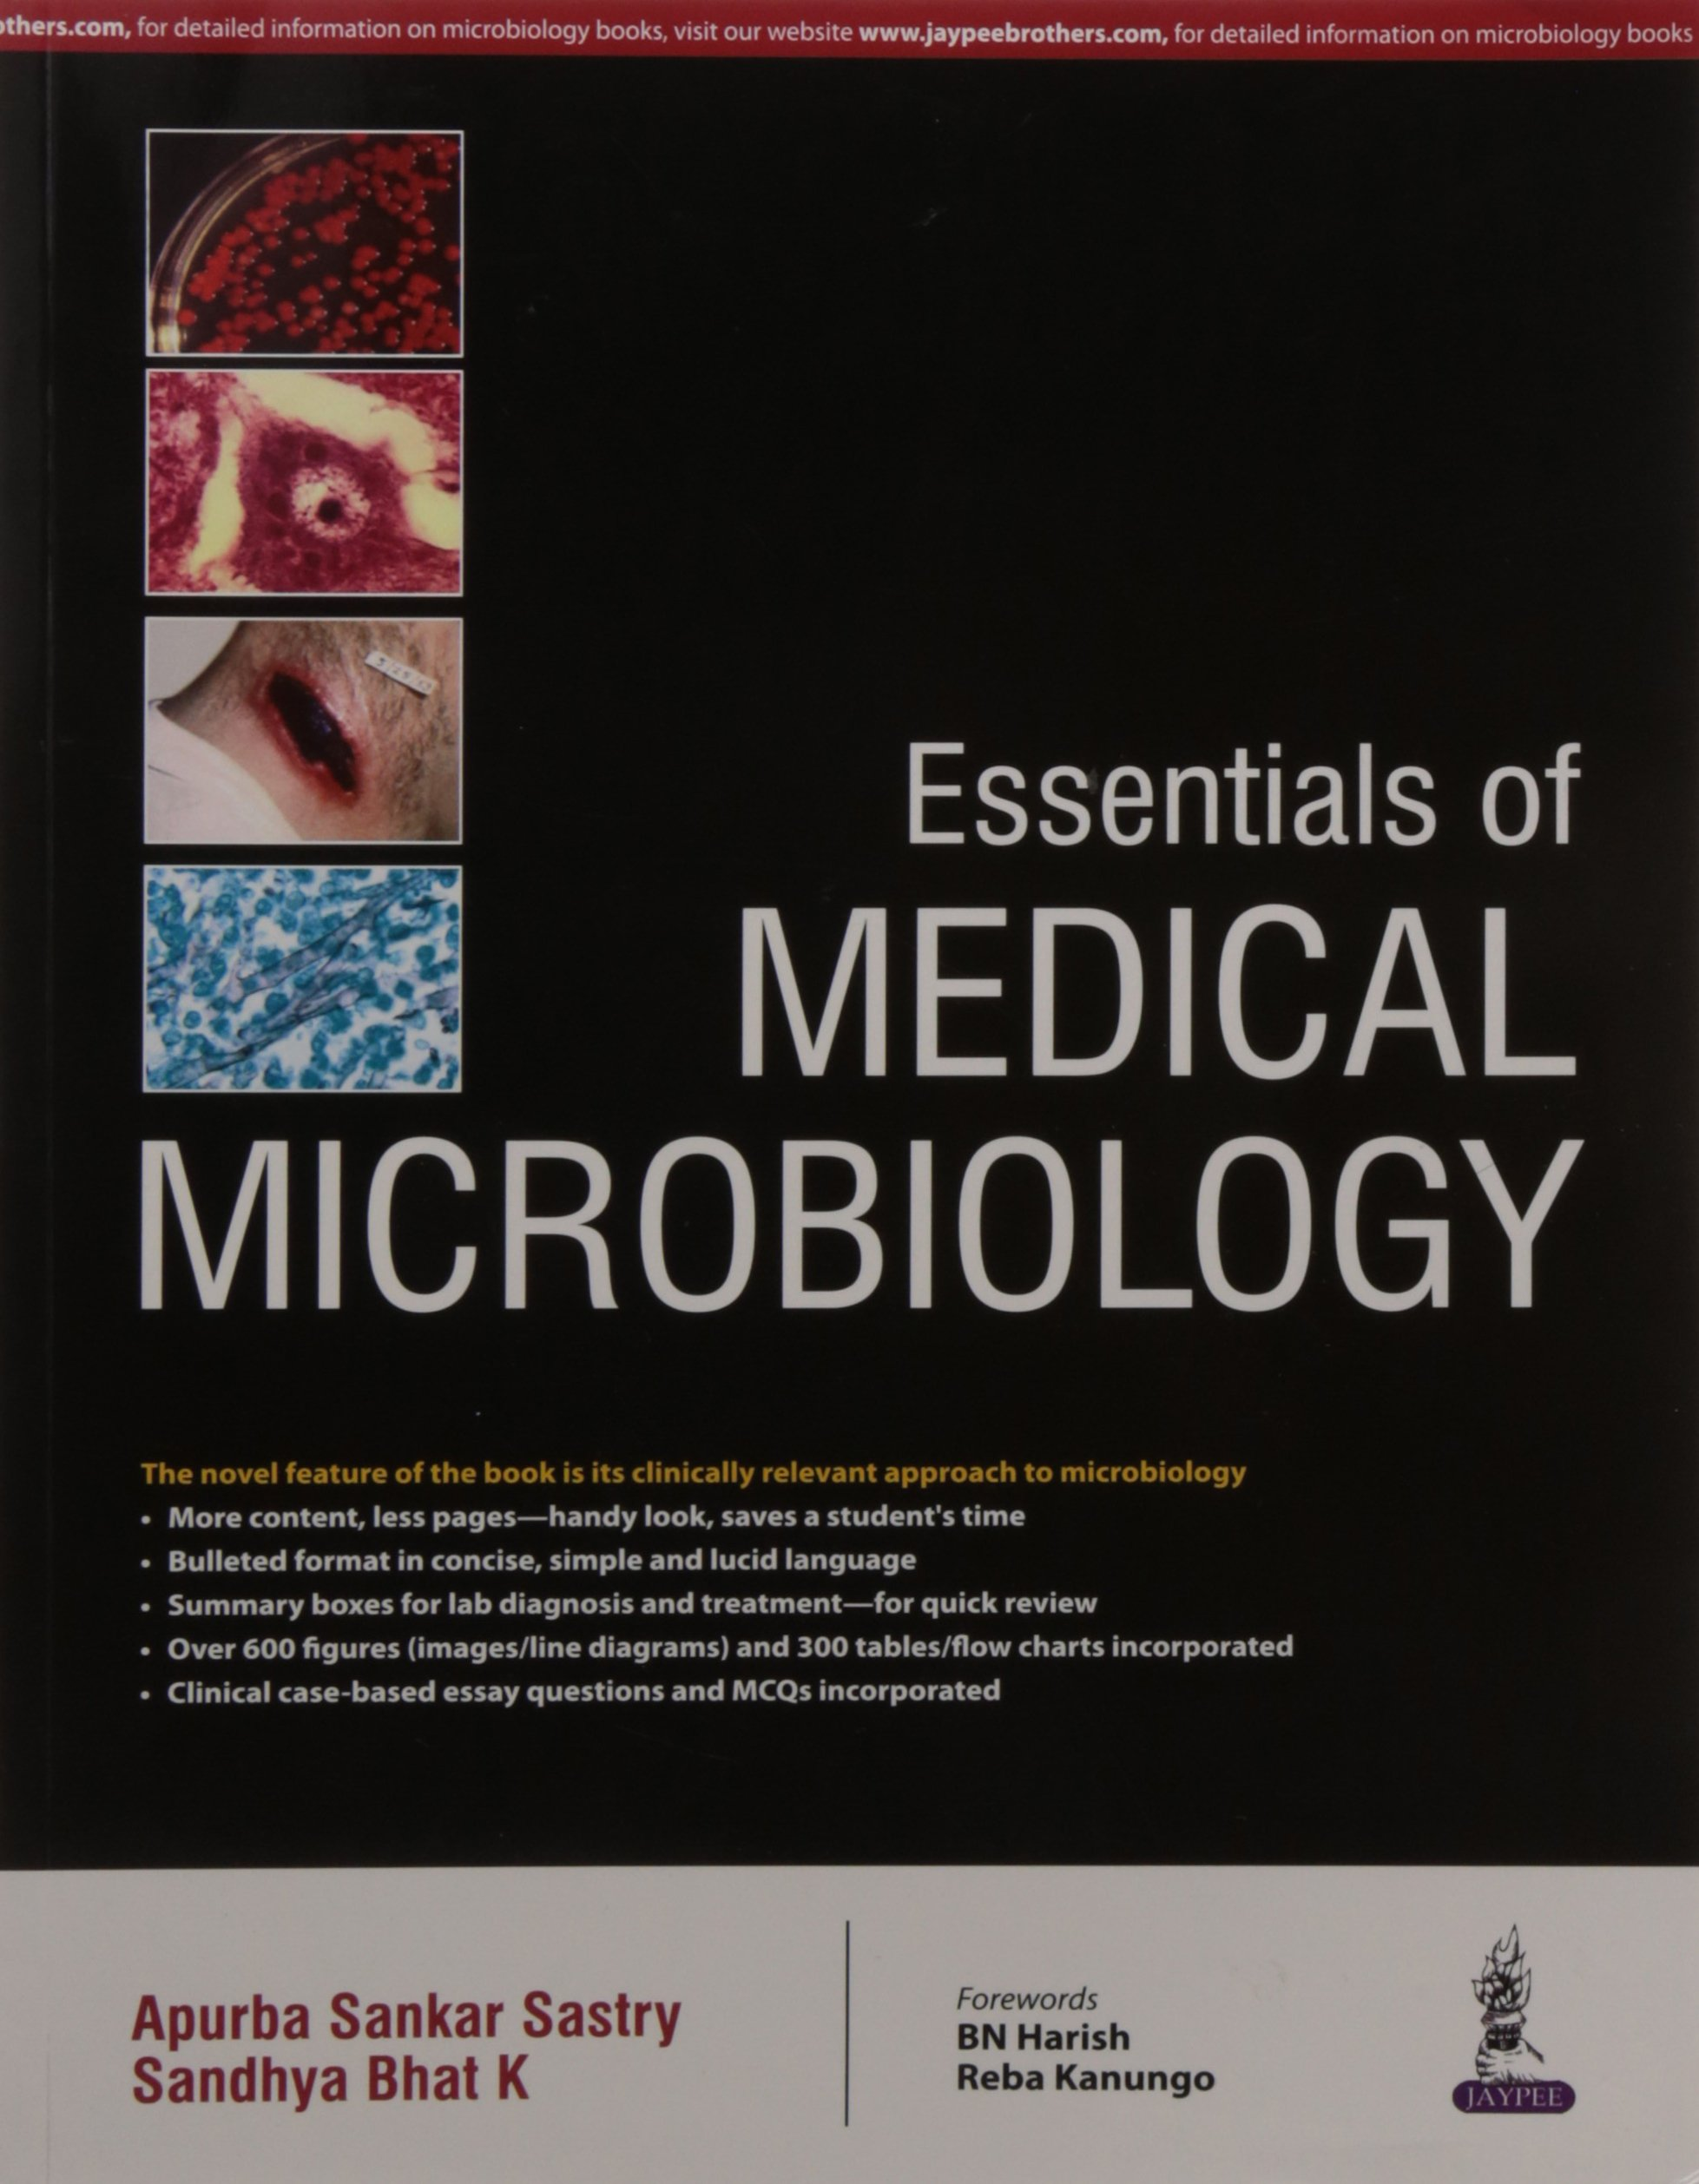 buy essentials of medical microbiology book online at low prices buy essentials of medical microbiology book online at low prices in essentials of medical microbiology reviews ratings in